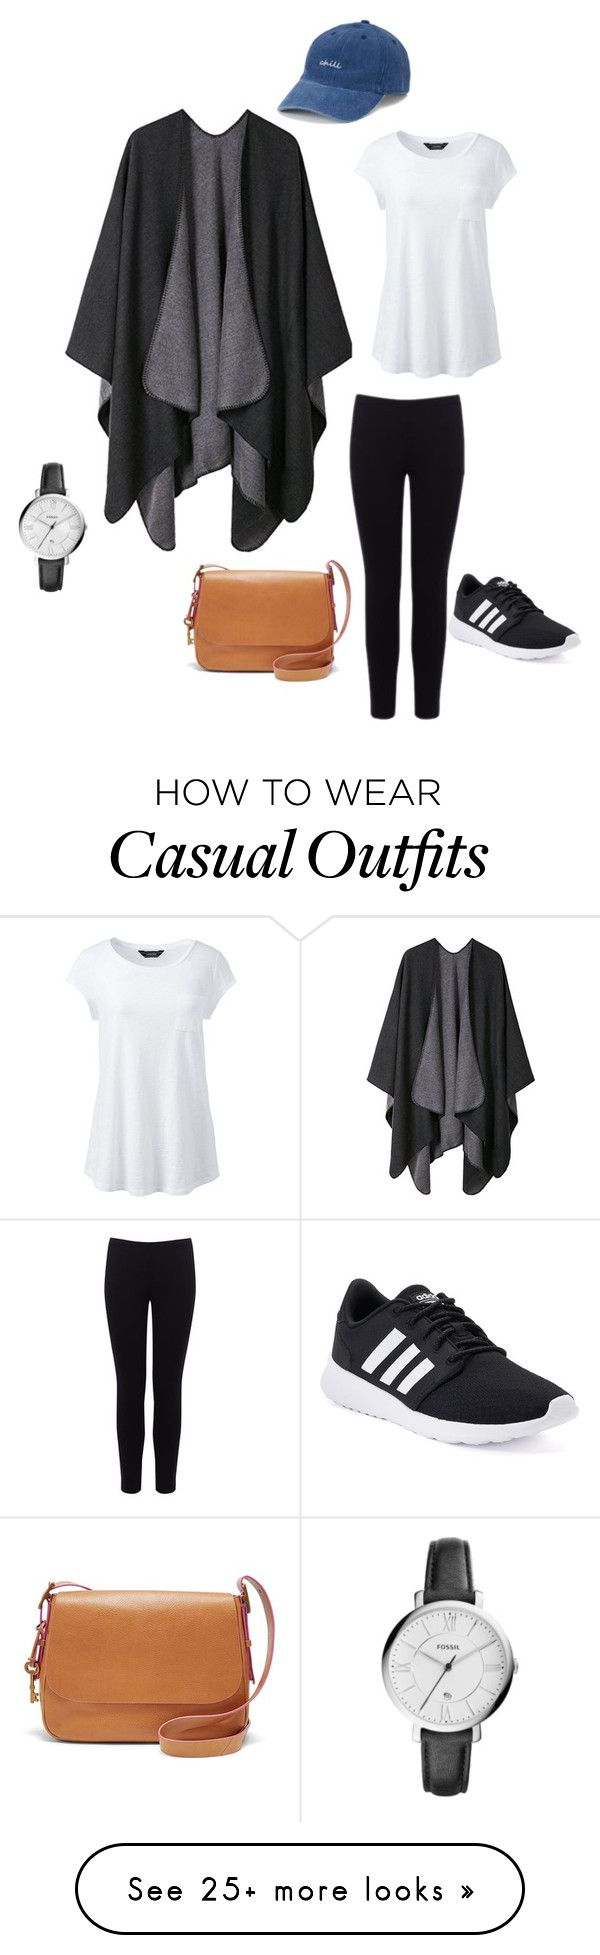 """Casual"" by sarah2o on Polyvore featuring SO, Warehouse, Lands' End, FOSSIL, adidas and plus size clothing"